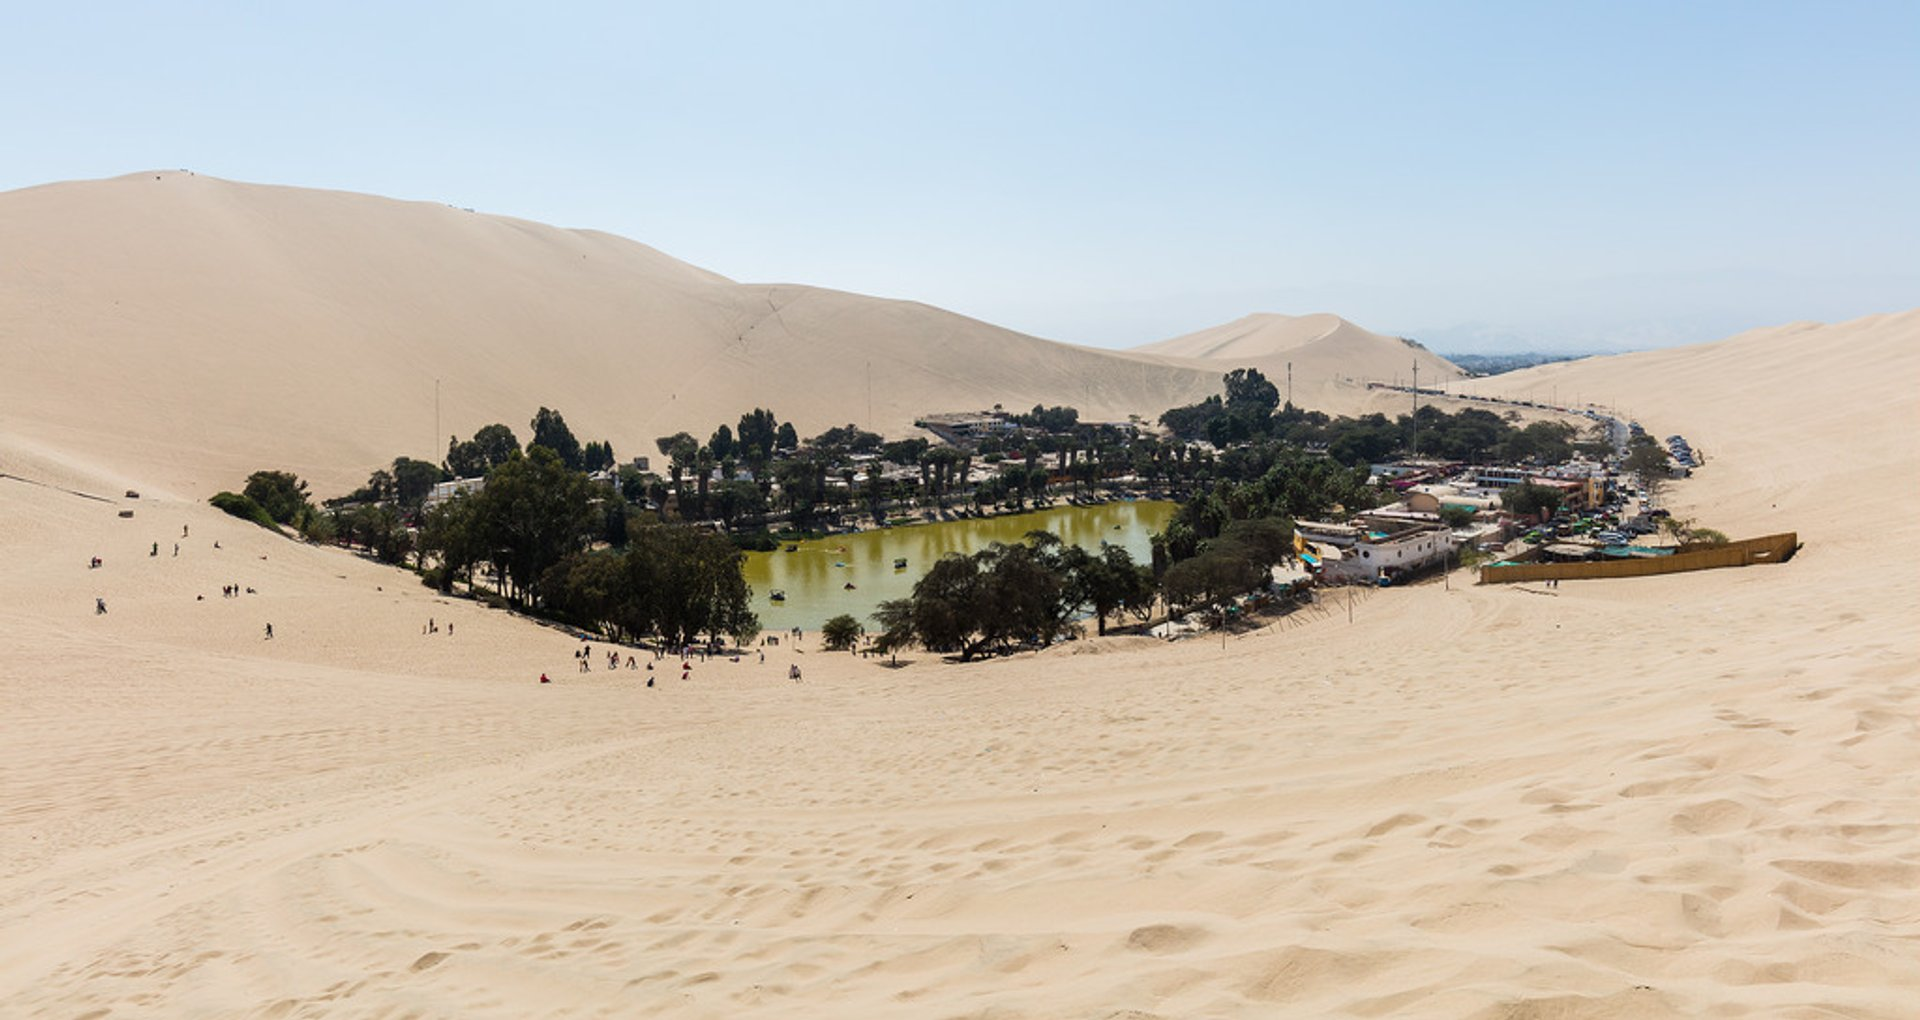 Huacachina Oasis in Peru 2020 - Best Time